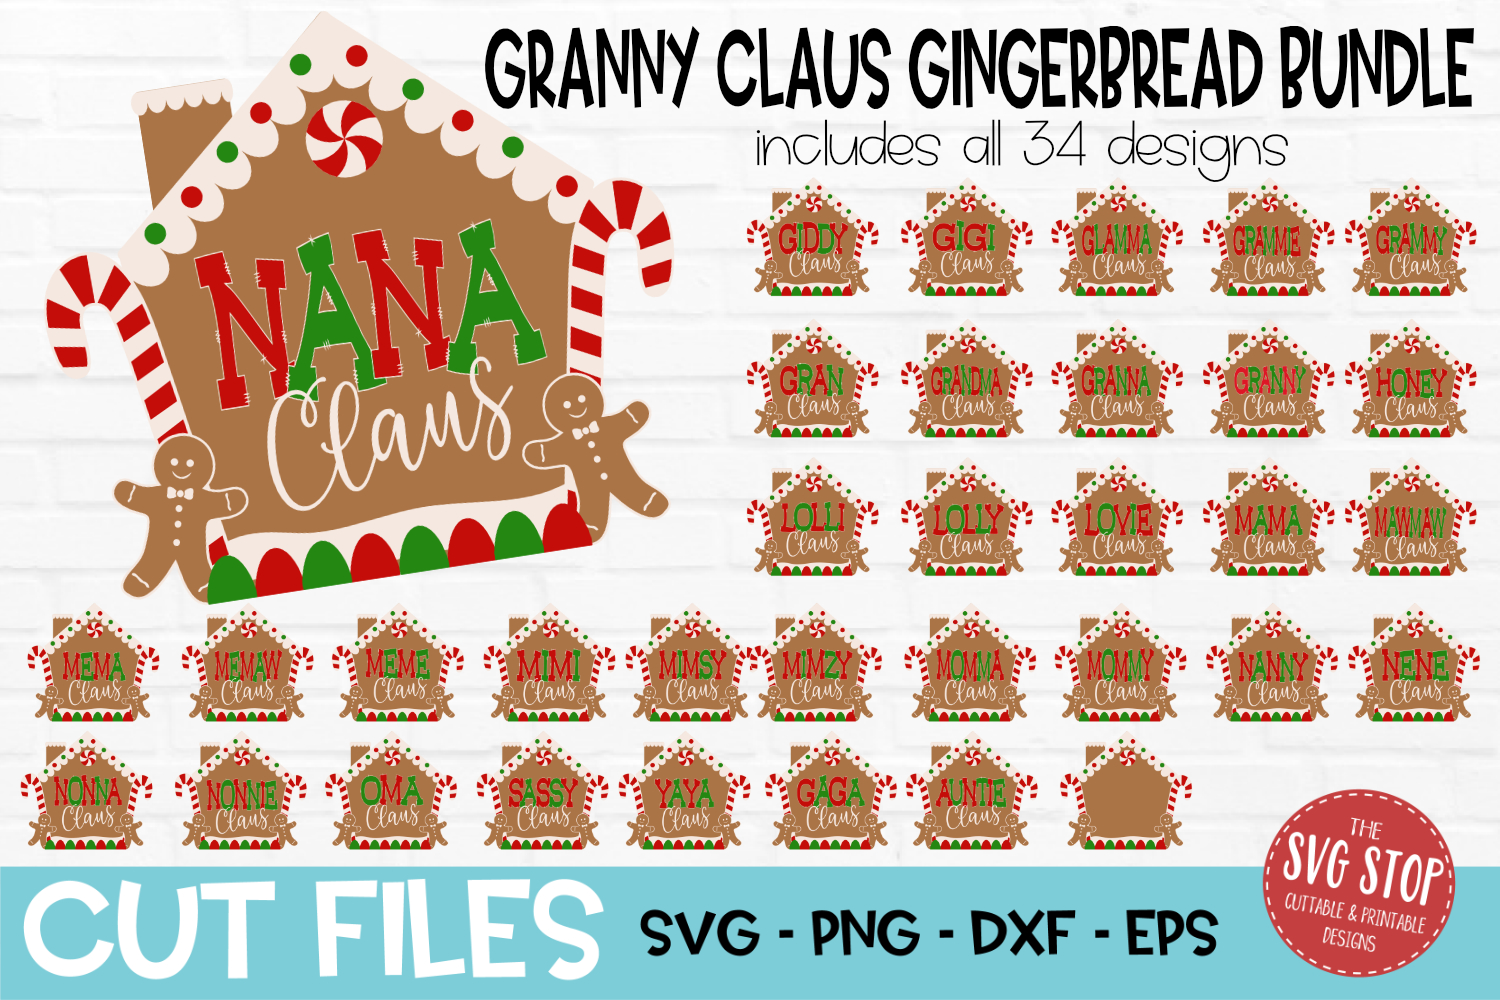 Gingerbread Granny Claus Bundle Christmas SVG, PNG, DXF, EPS example image 1